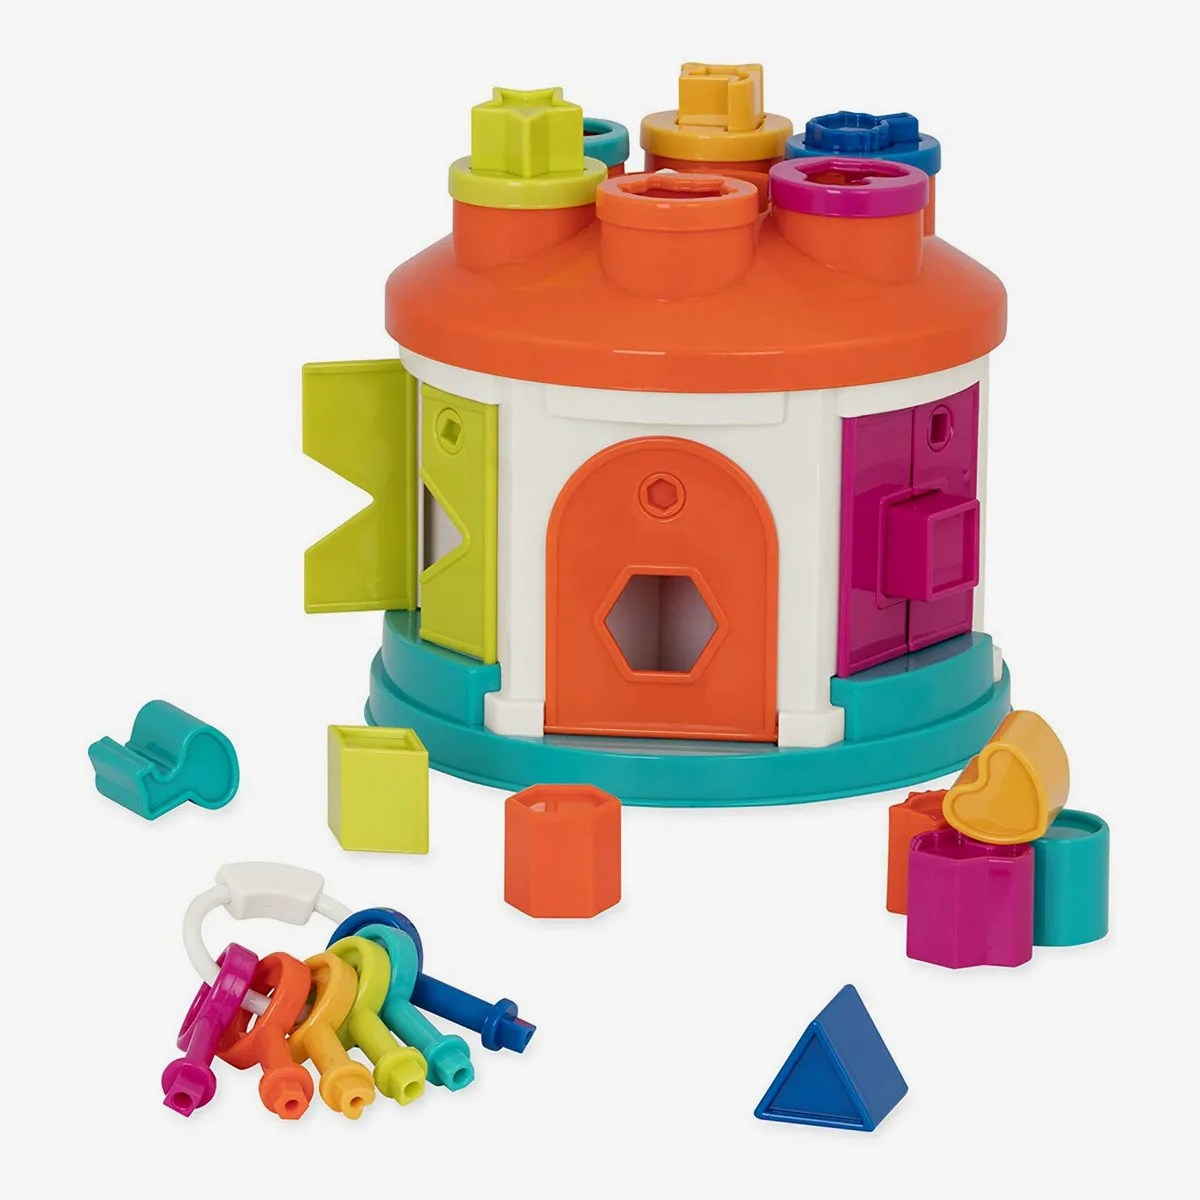 25 Best Toys And Gifts For 2 Year Olds 2020 The Strategist New York Magazine